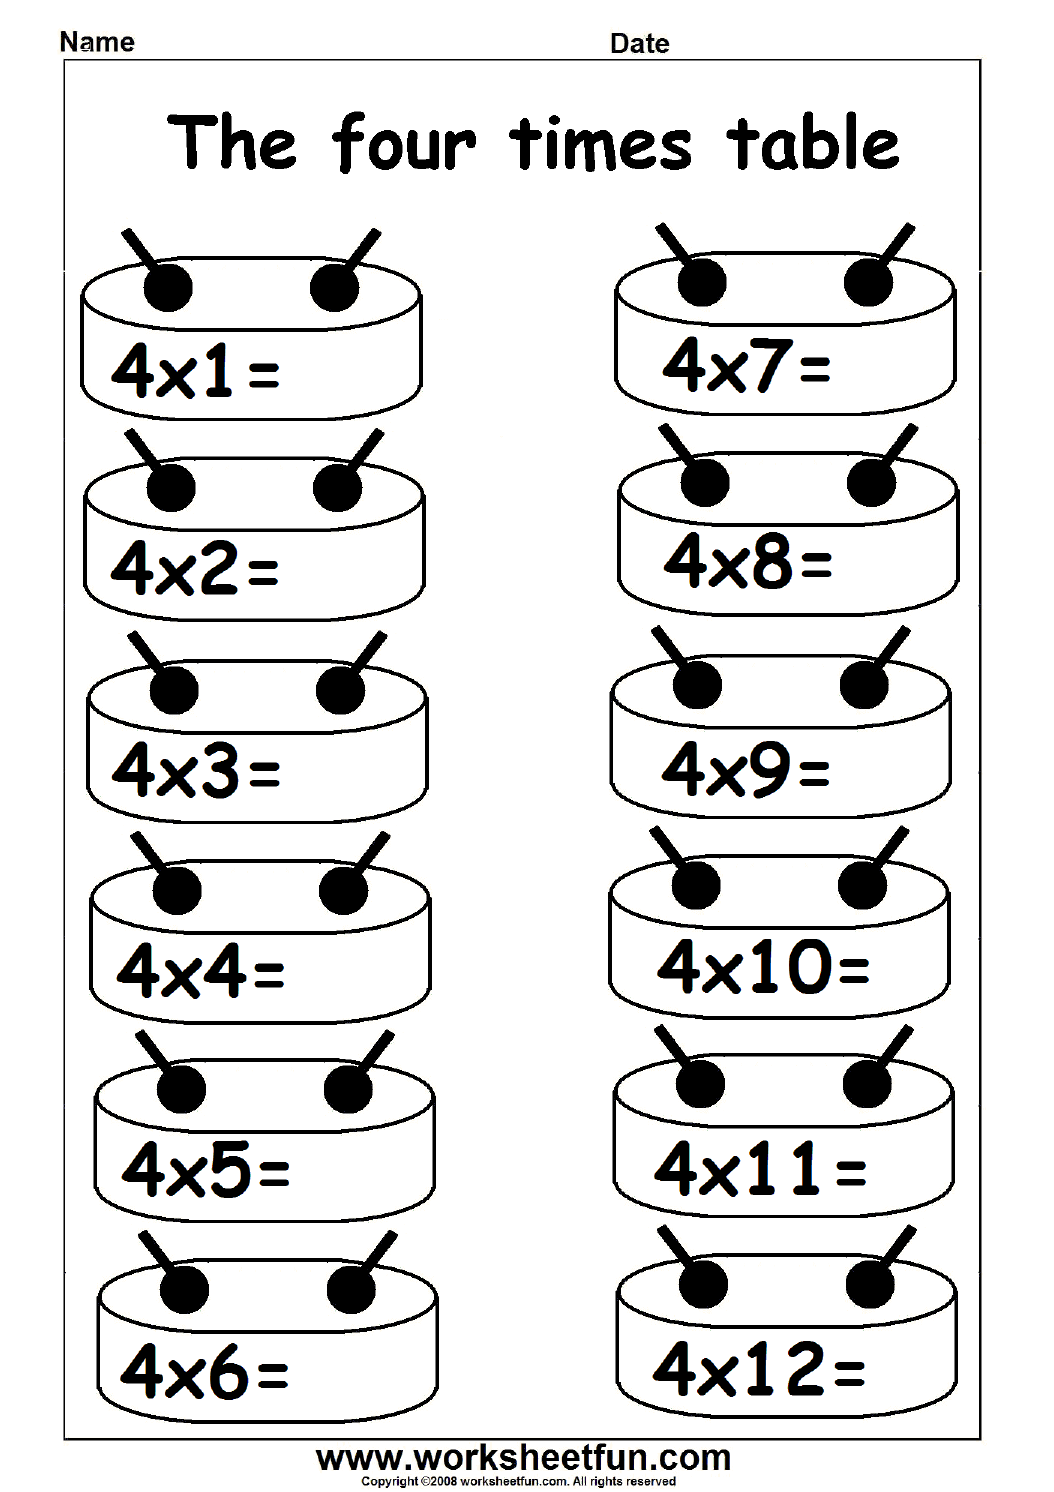 Multiplication Times Tables Worksheets 2, 3, 4, 6, 7, 8, 4 Times